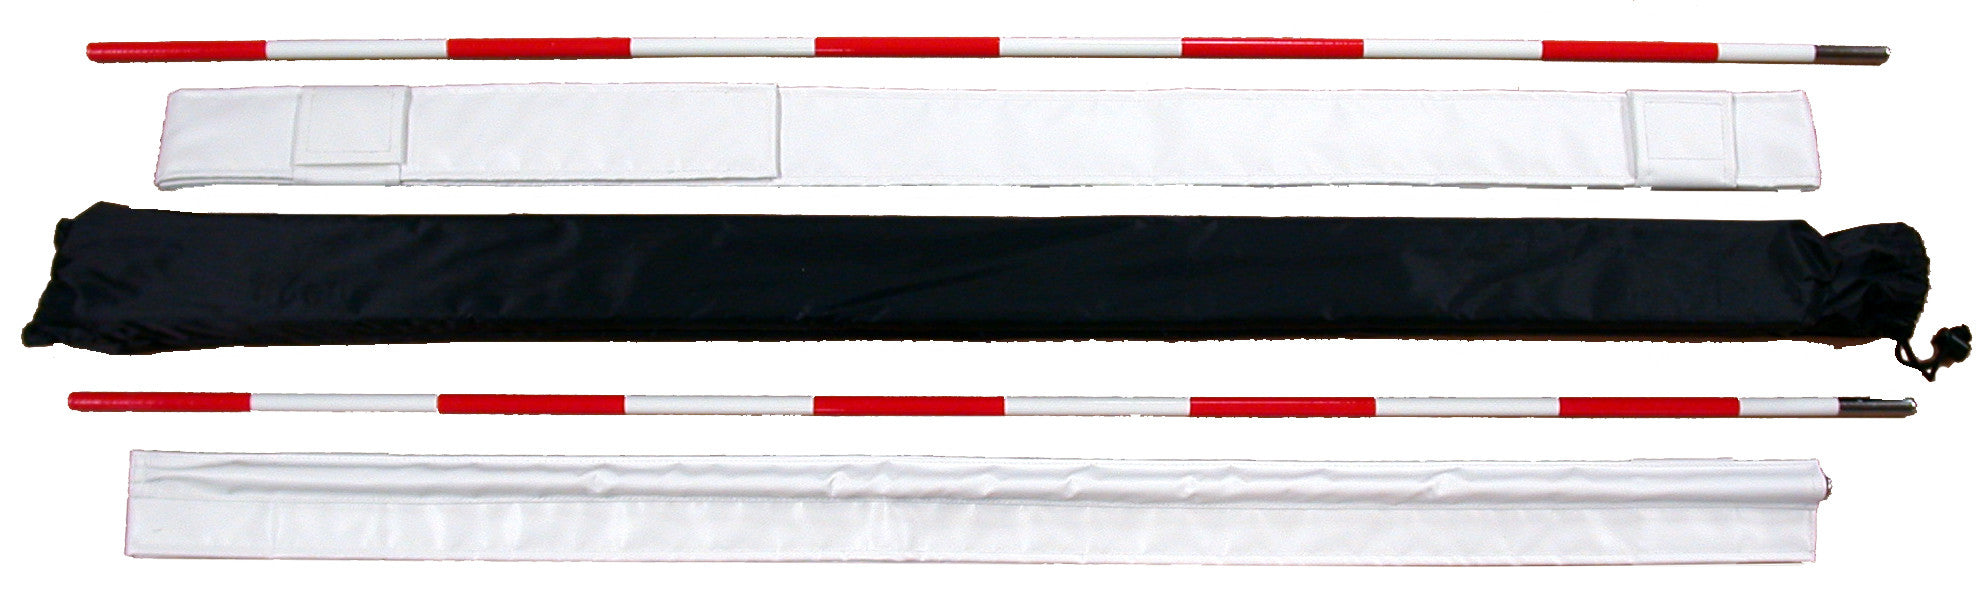 15A-two section red & white fiberglass net antenna & carrying bag